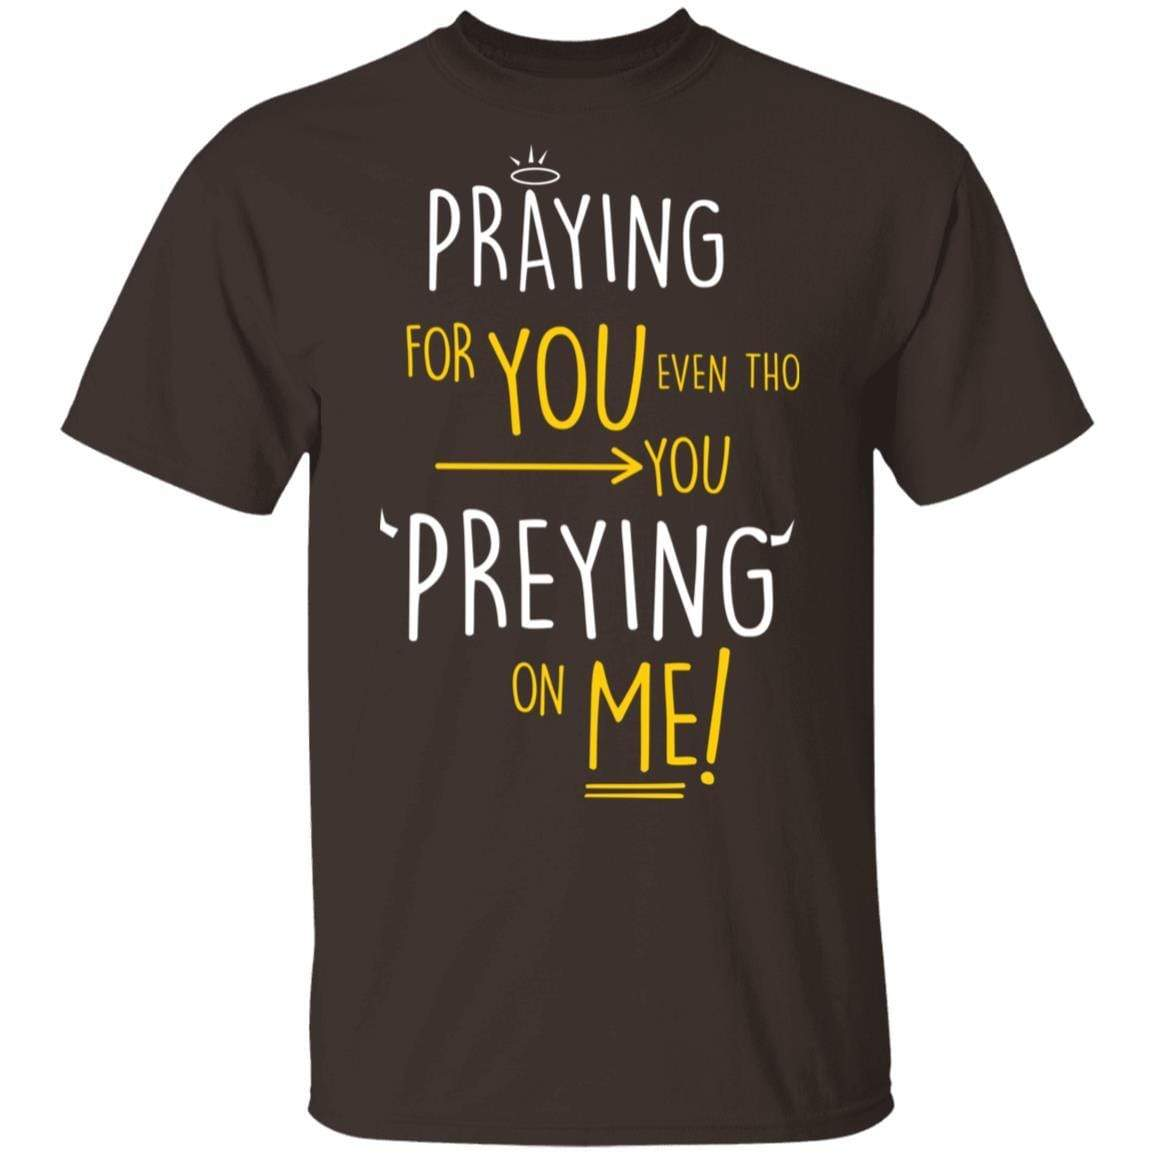 Praying For You Even Tho You Preying On Me T-Shirts, Hoodies 1049-9956-87589177-48152 - Tee Ript